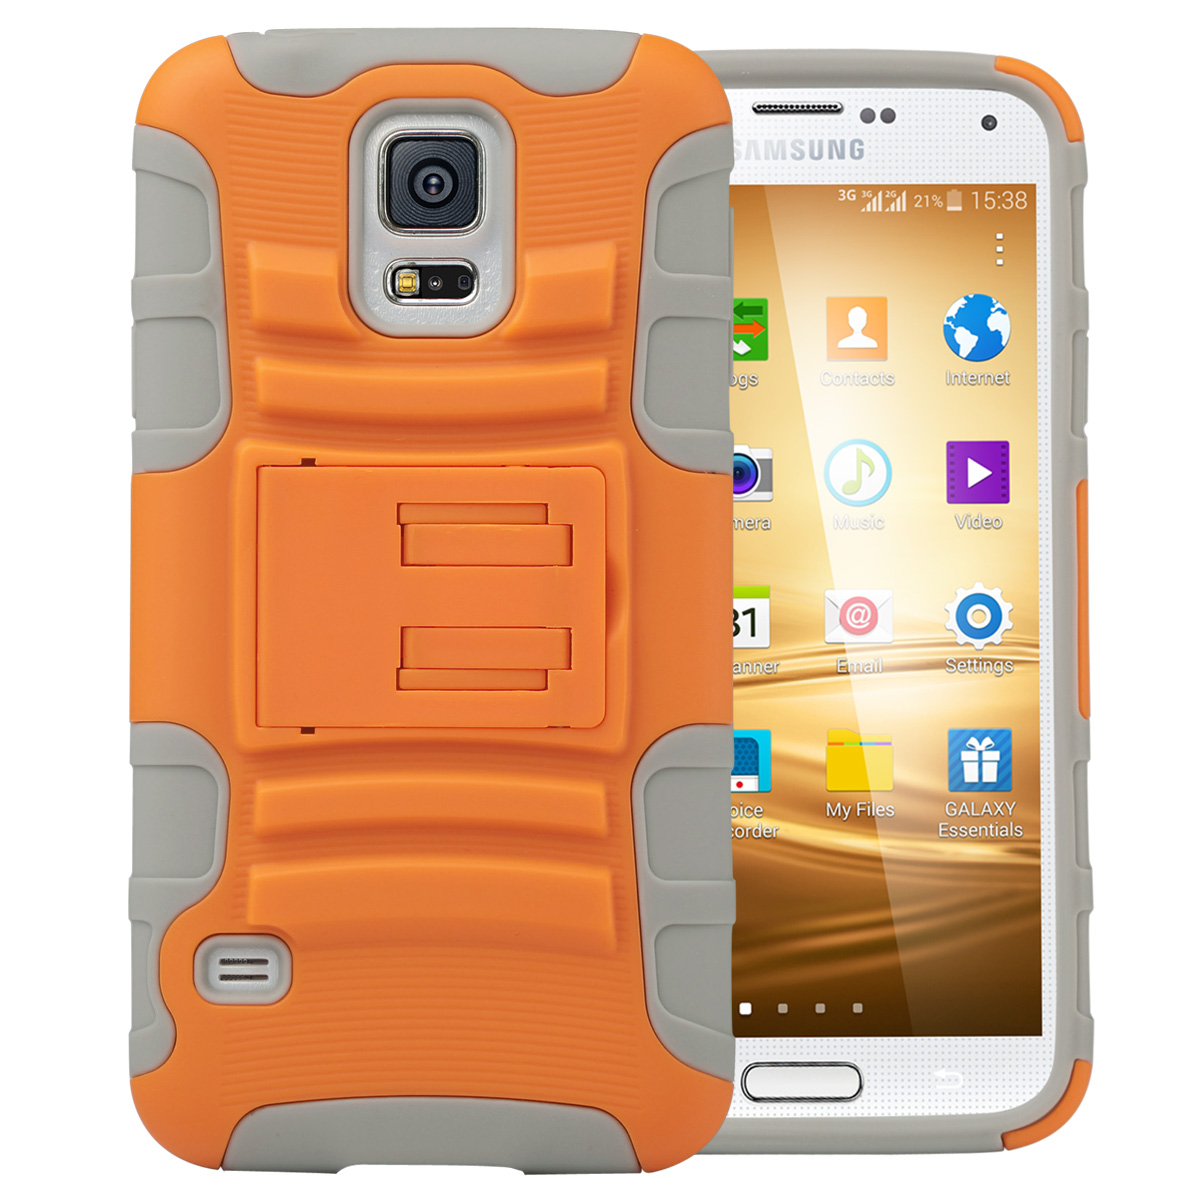 Galaxy S5 Case, ULAK Slim Shockproof Dual Layer Protective Case with Swivel Belt Clip Holster & Built-in Kickstand for Samsung Galaxy S5 2014 Release